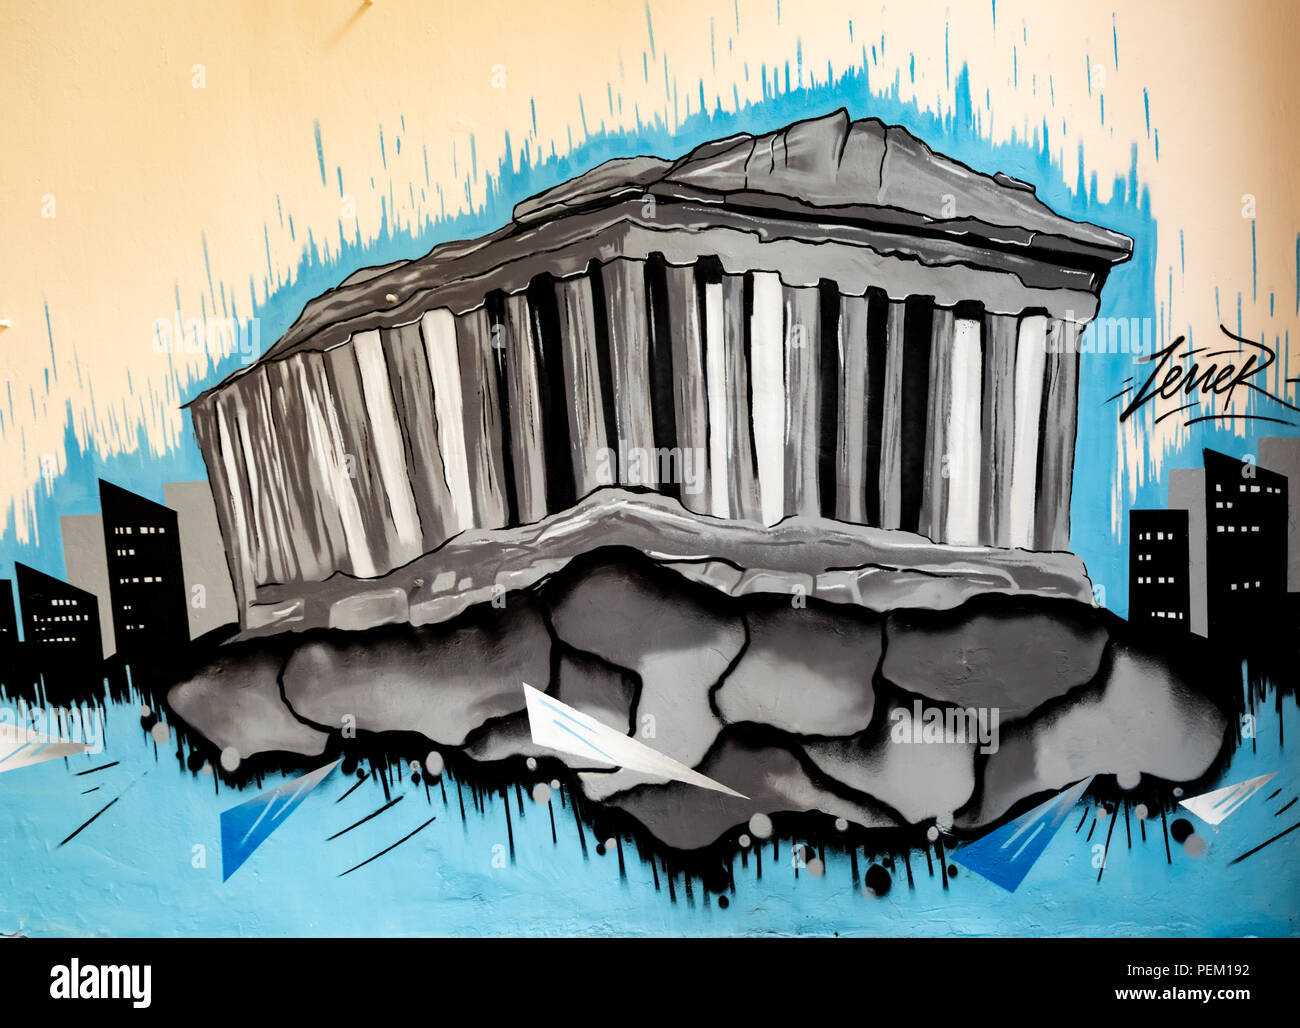 Der Parthenon Graffiti, Zene R, Street Art. Stockbild